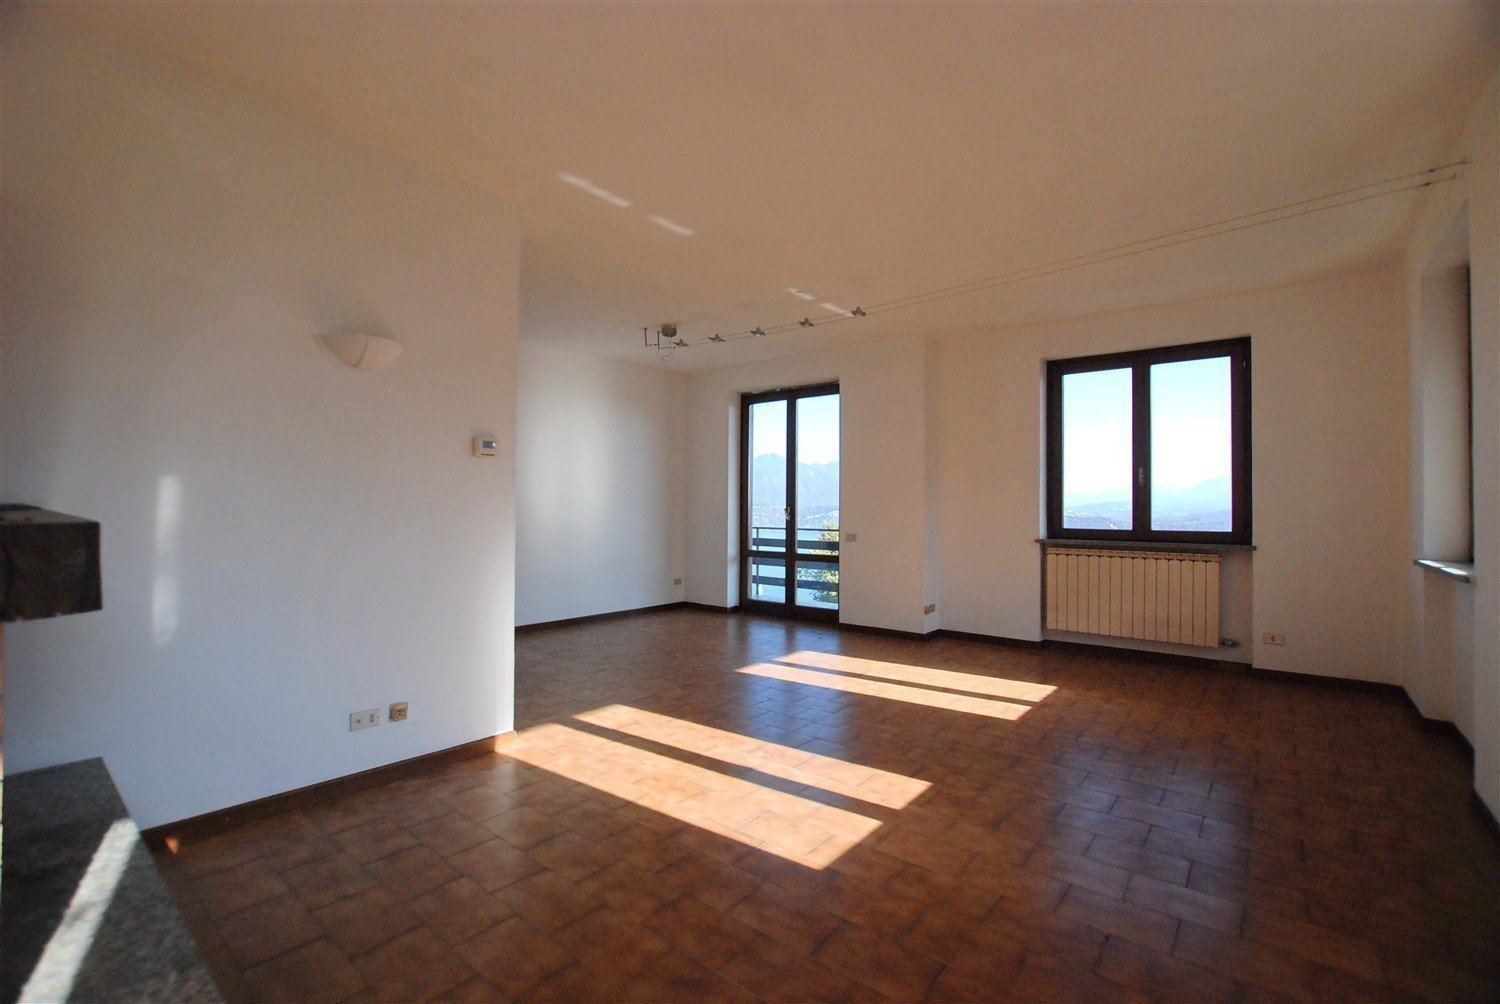 Apartment for sale in Belgirate - salon